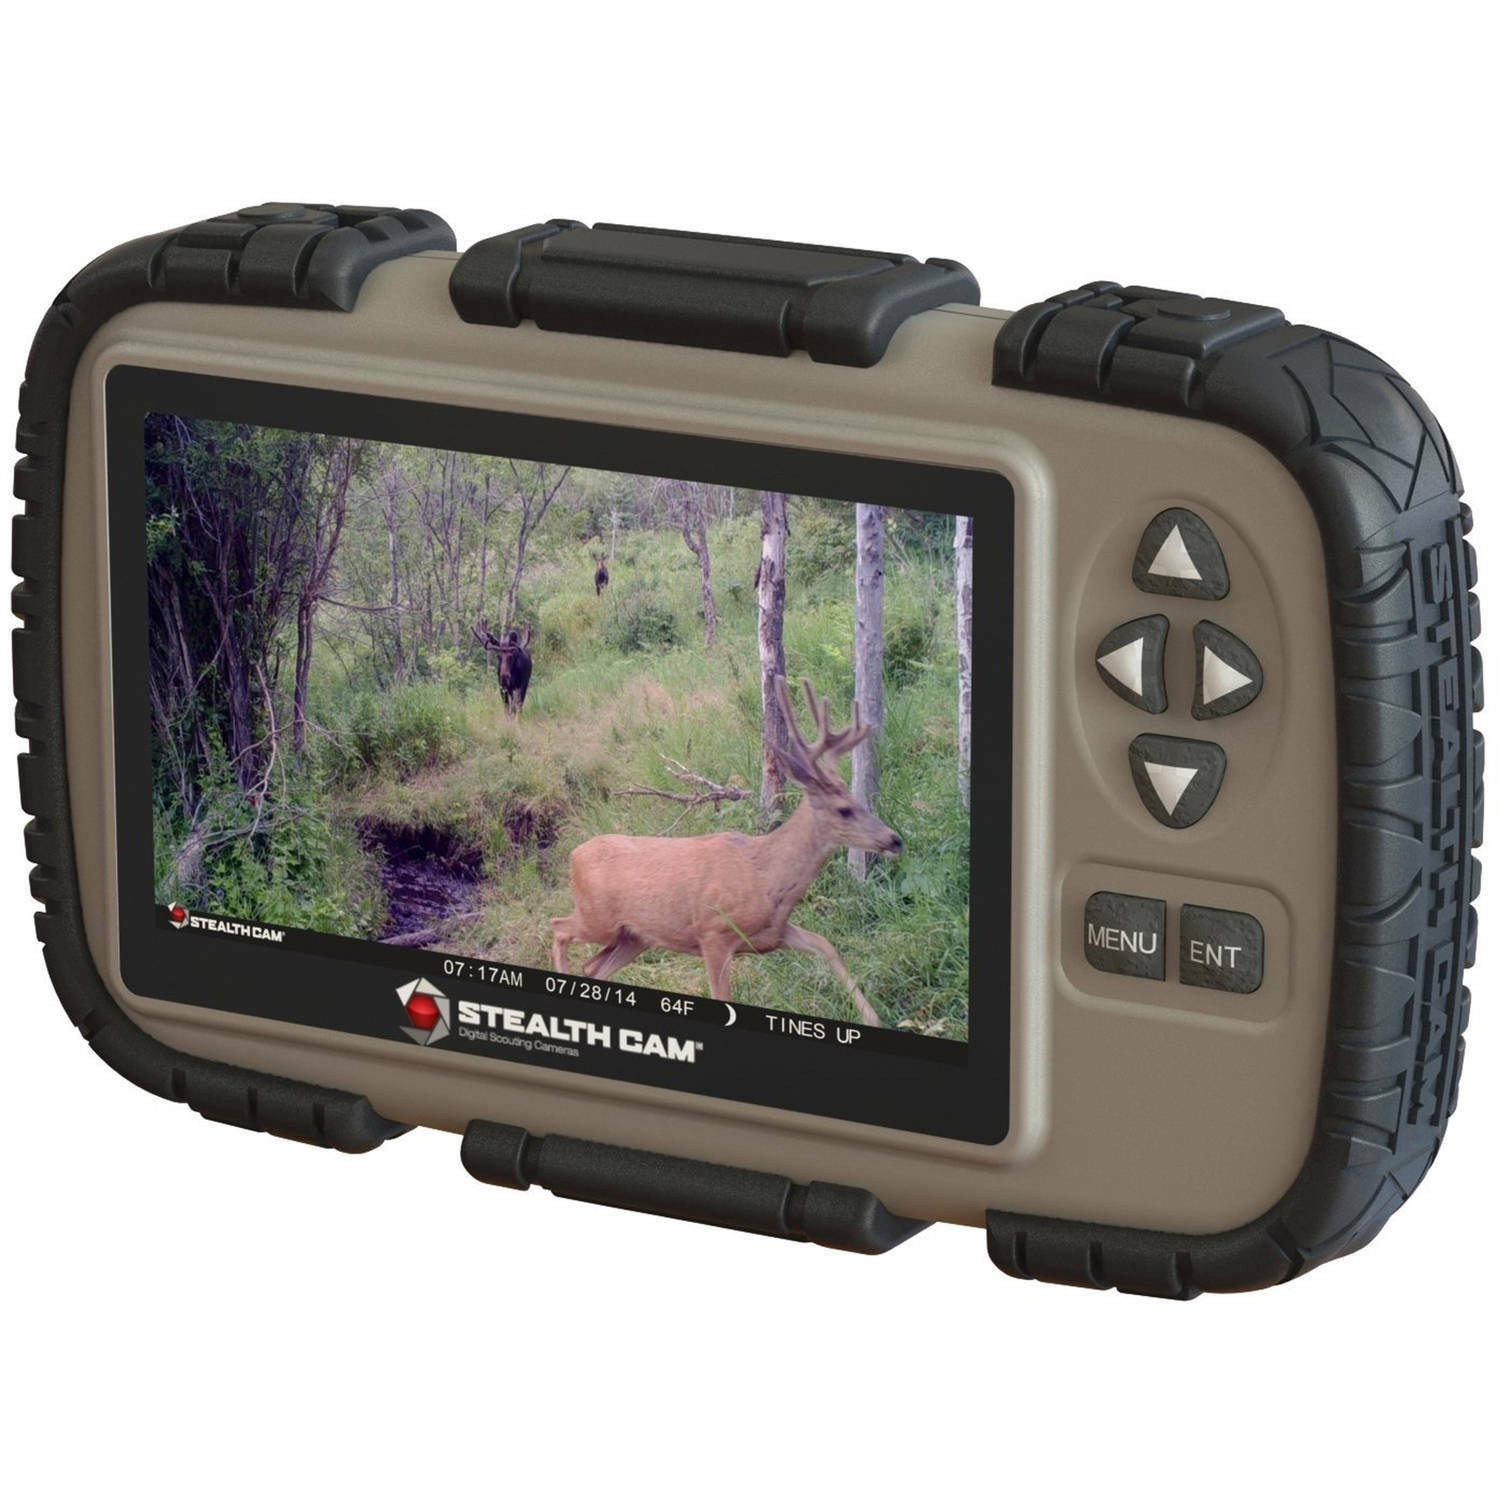 Stealth Cam SD Card Reader Viewer Photo Video Outdoor  Hunting Game Trail Watcher  just for you